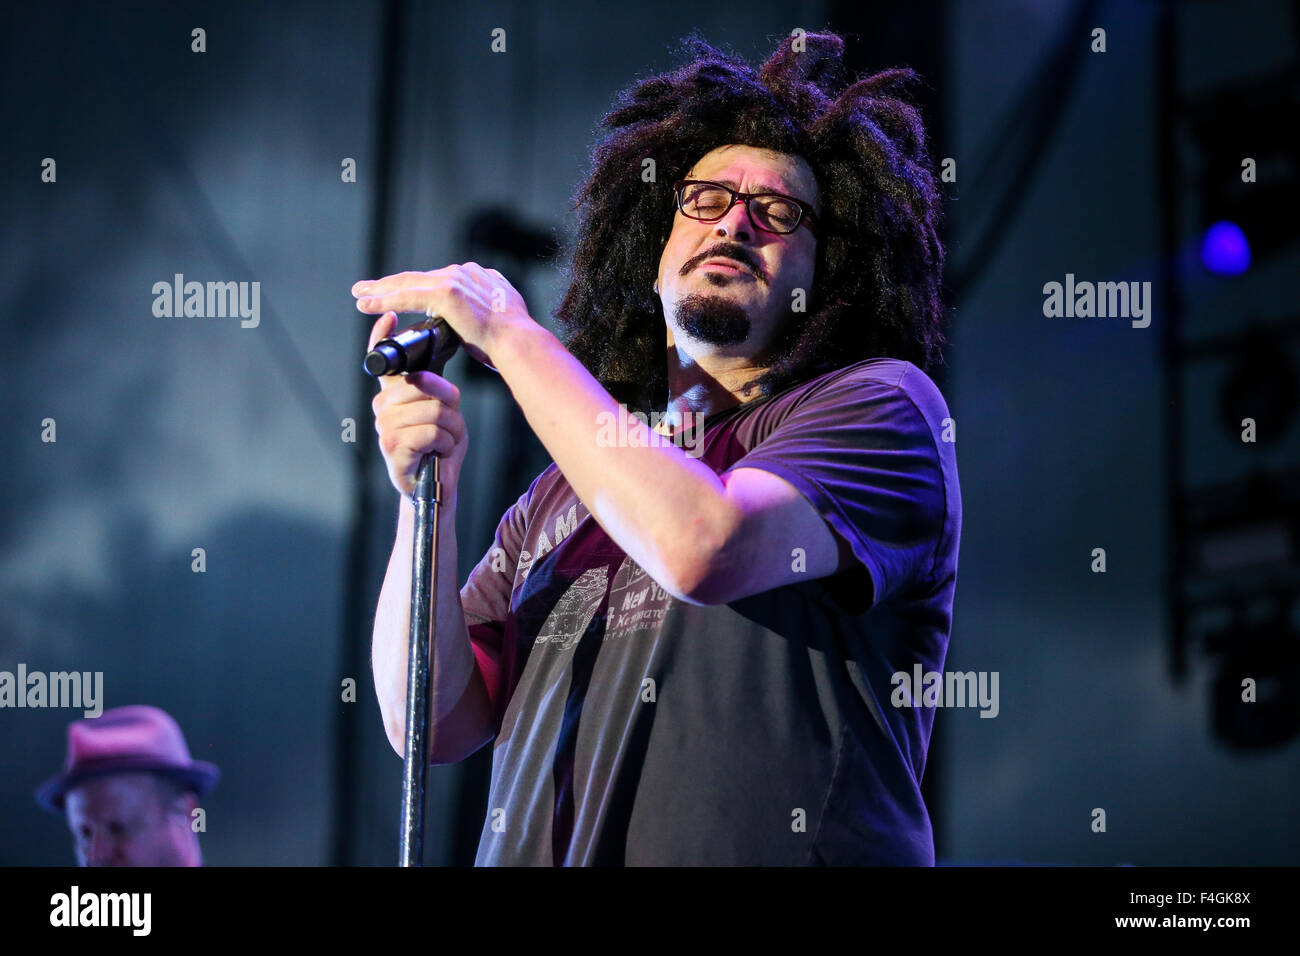 Counting Crows perform live in concert - Stock Image